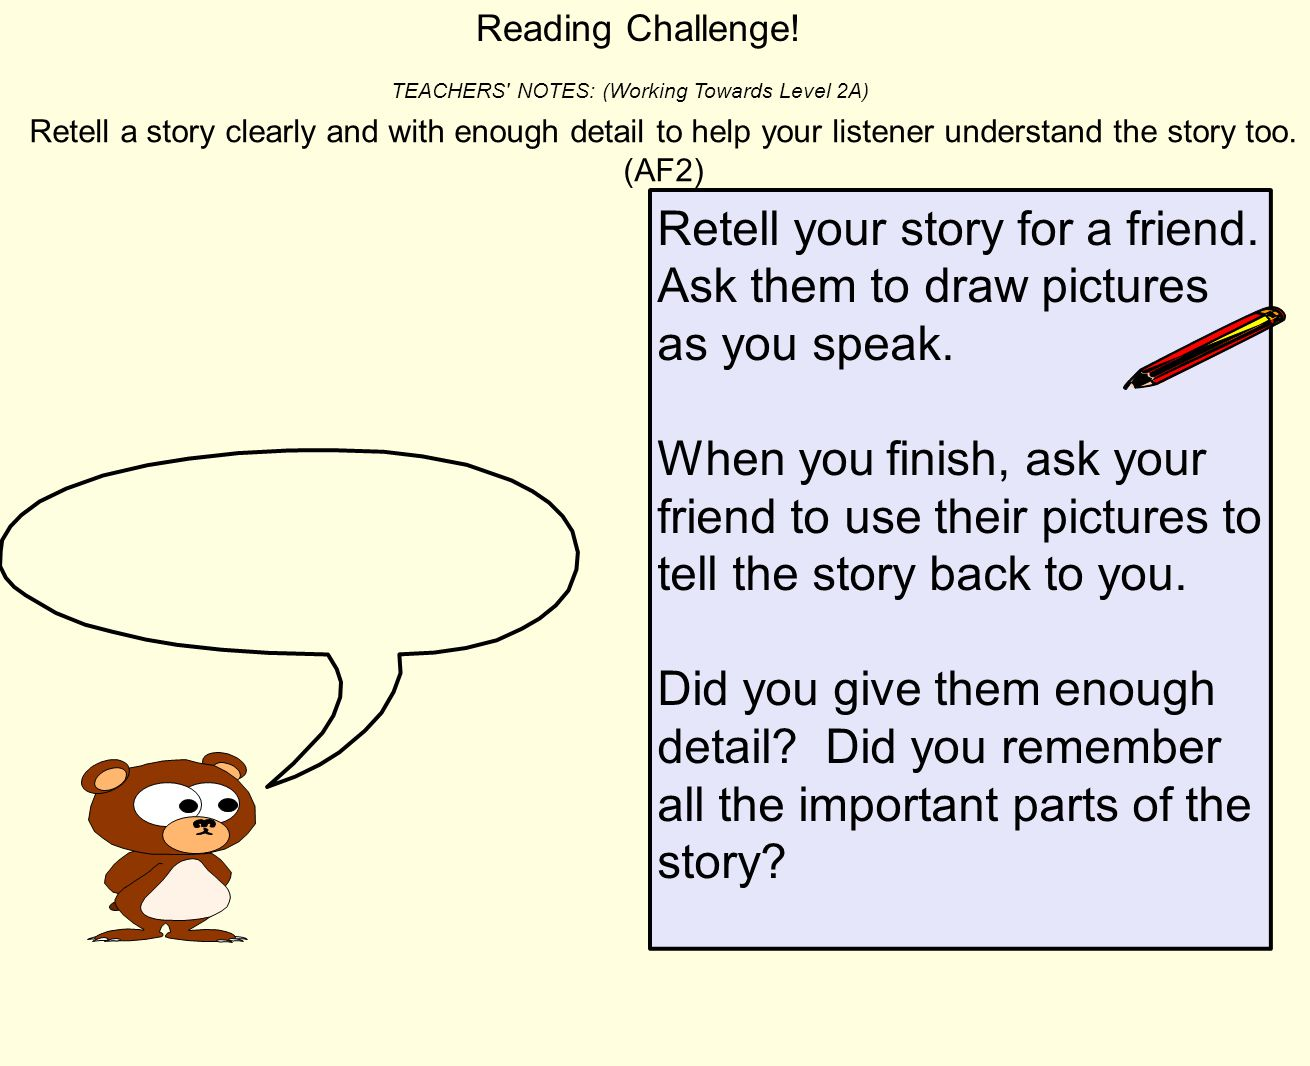 Retell a story clearly and with enough detail to help your listener understand the story too.